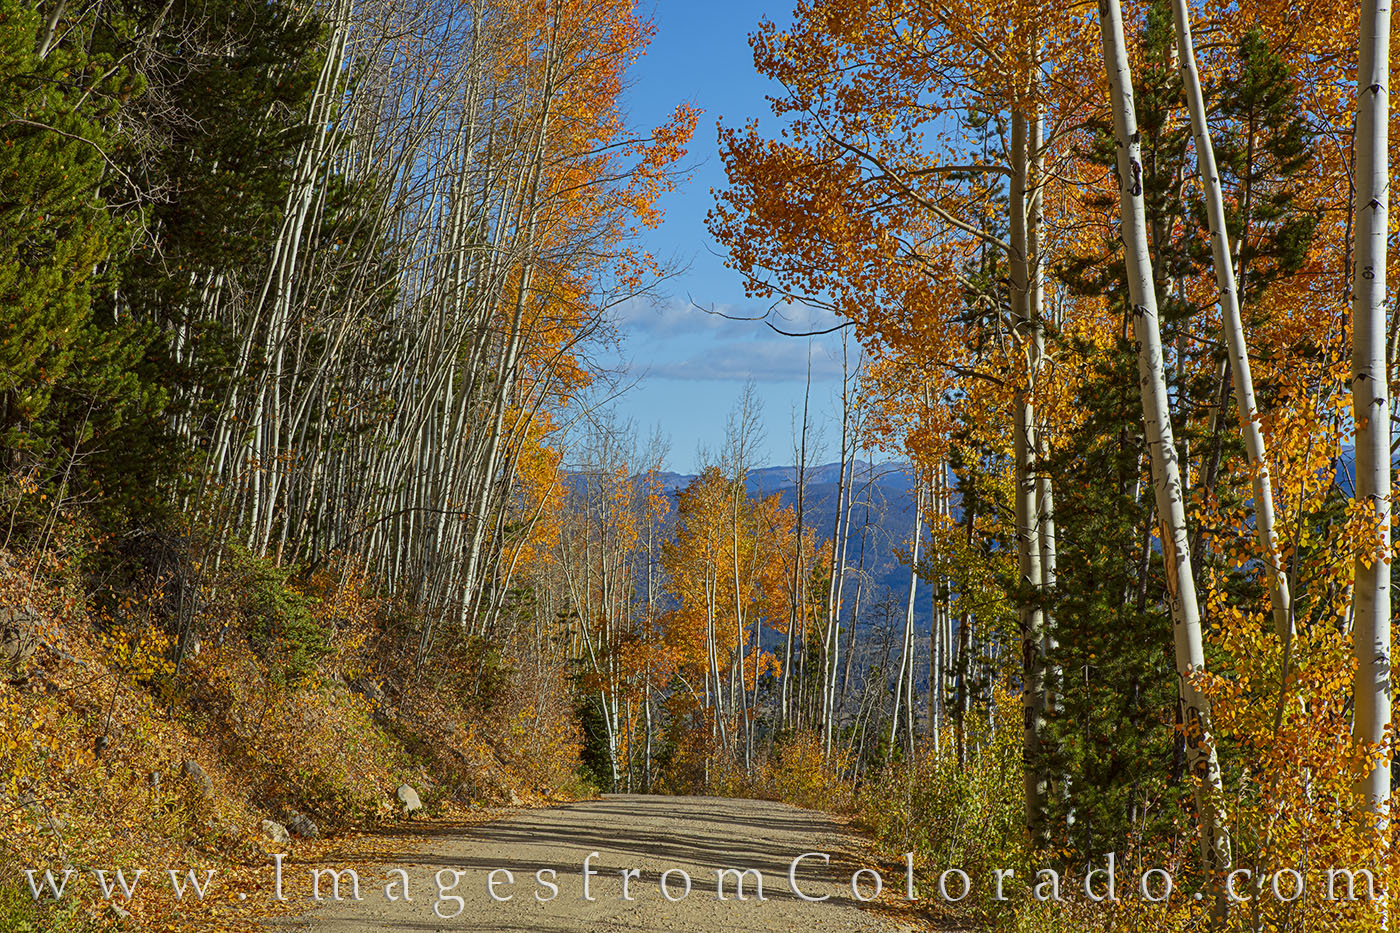 county road, fraser, winter park, autumn, fall, aspen, pine, morning, photo